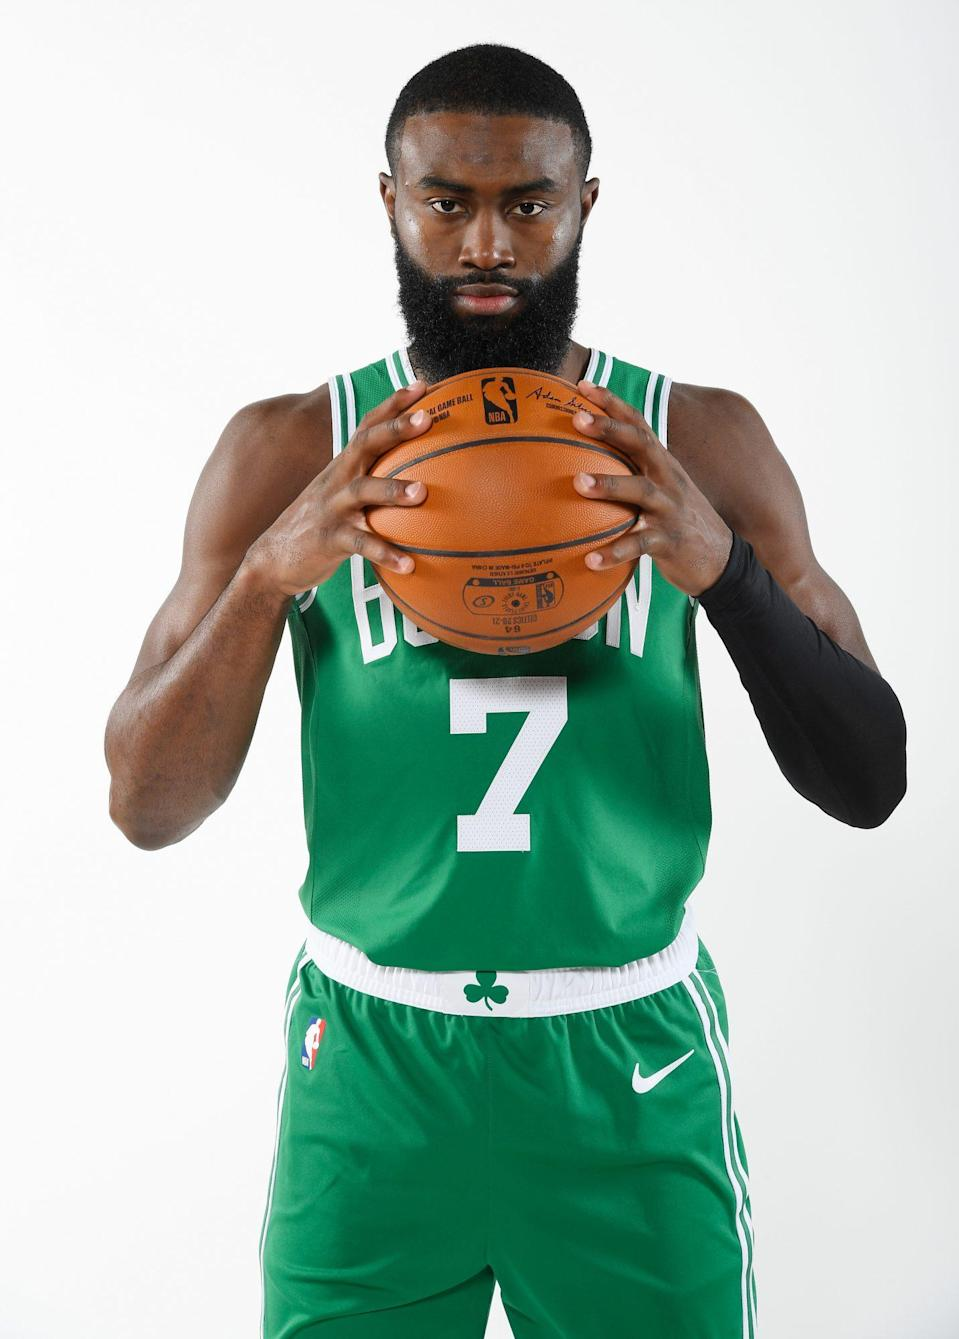 """<p>The Boston Celtics player said of his selection by James, """"To have one of — if not the — best player select you and point out some of the things you've been doing or some of the things he's seen, is great,"""" <a href=""""https://www.boston.com/sports/boston-celtics/2021/03/05/jaylen-brown-honored-by-lebron-james-all-star-selection"""" rel=""""nofollow noopener"""" target=""""_blank"""" data-ylk=""""slk:according to Boston.com."""" class=""""link rapid-noclick-resp"""">according to Boston.com.</a></p>"""